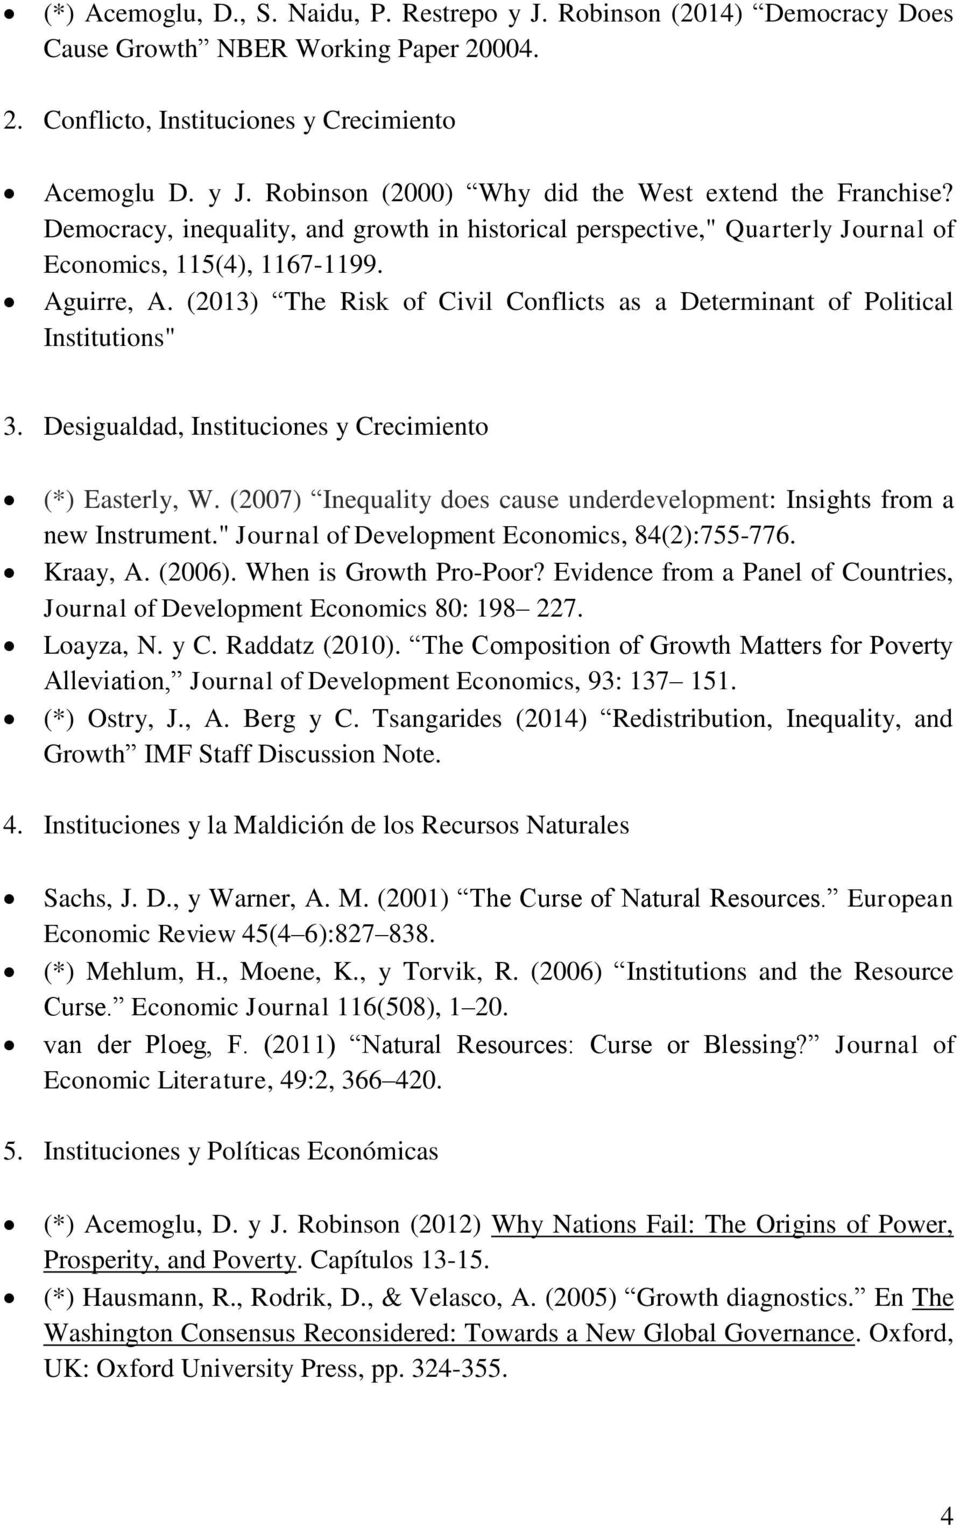 "(2013) The Risk of Civil Conflicts as a Determinant of Political Institutions"" 3. Desigualdad, Instituciones y Crecimiento (*) Easterly, W."